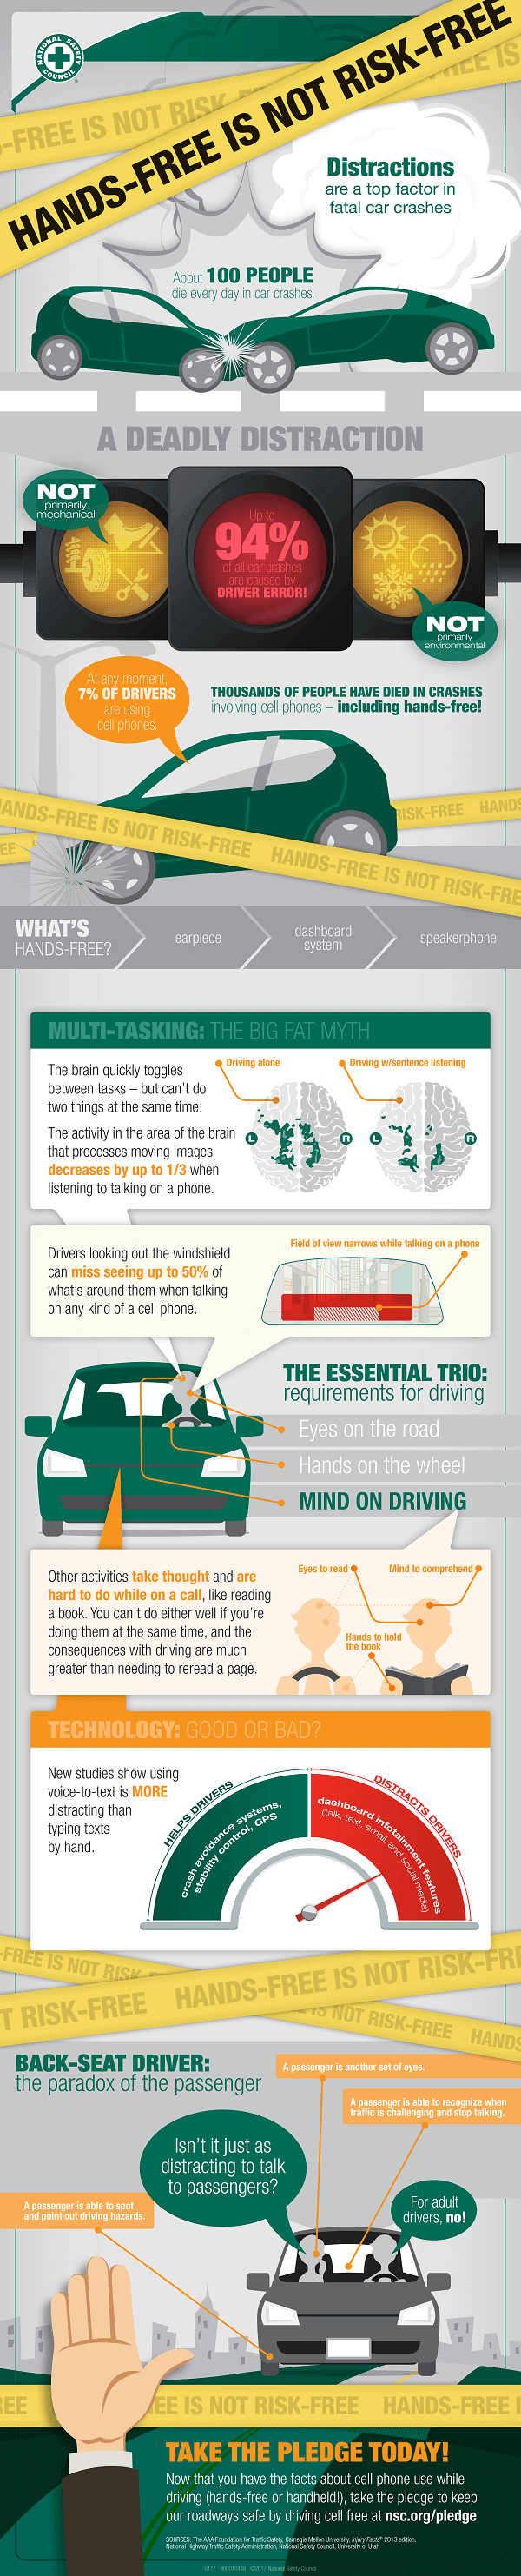 Hands-Free Is Not Risk-Free